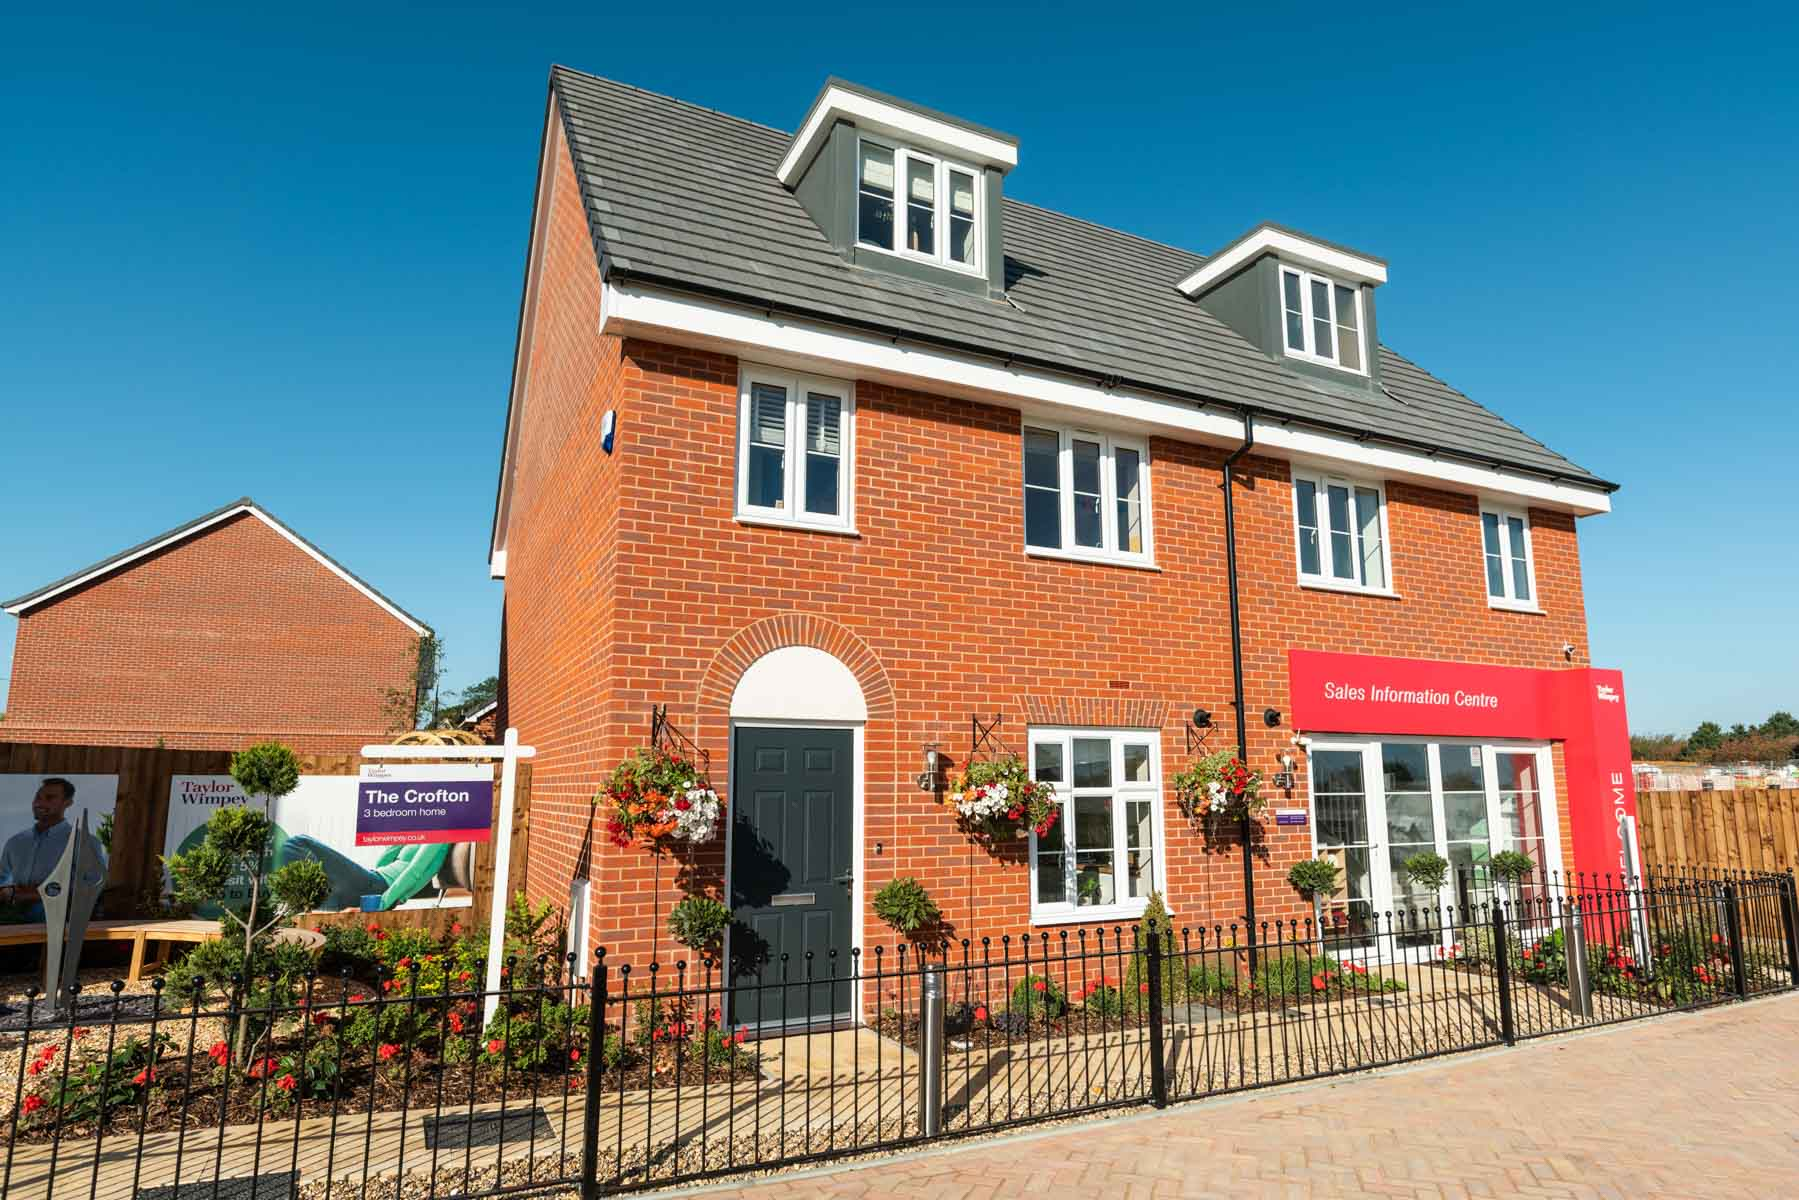 Wolsey Grange New Homes In Ipswich Suffolk Taylor Wimpey